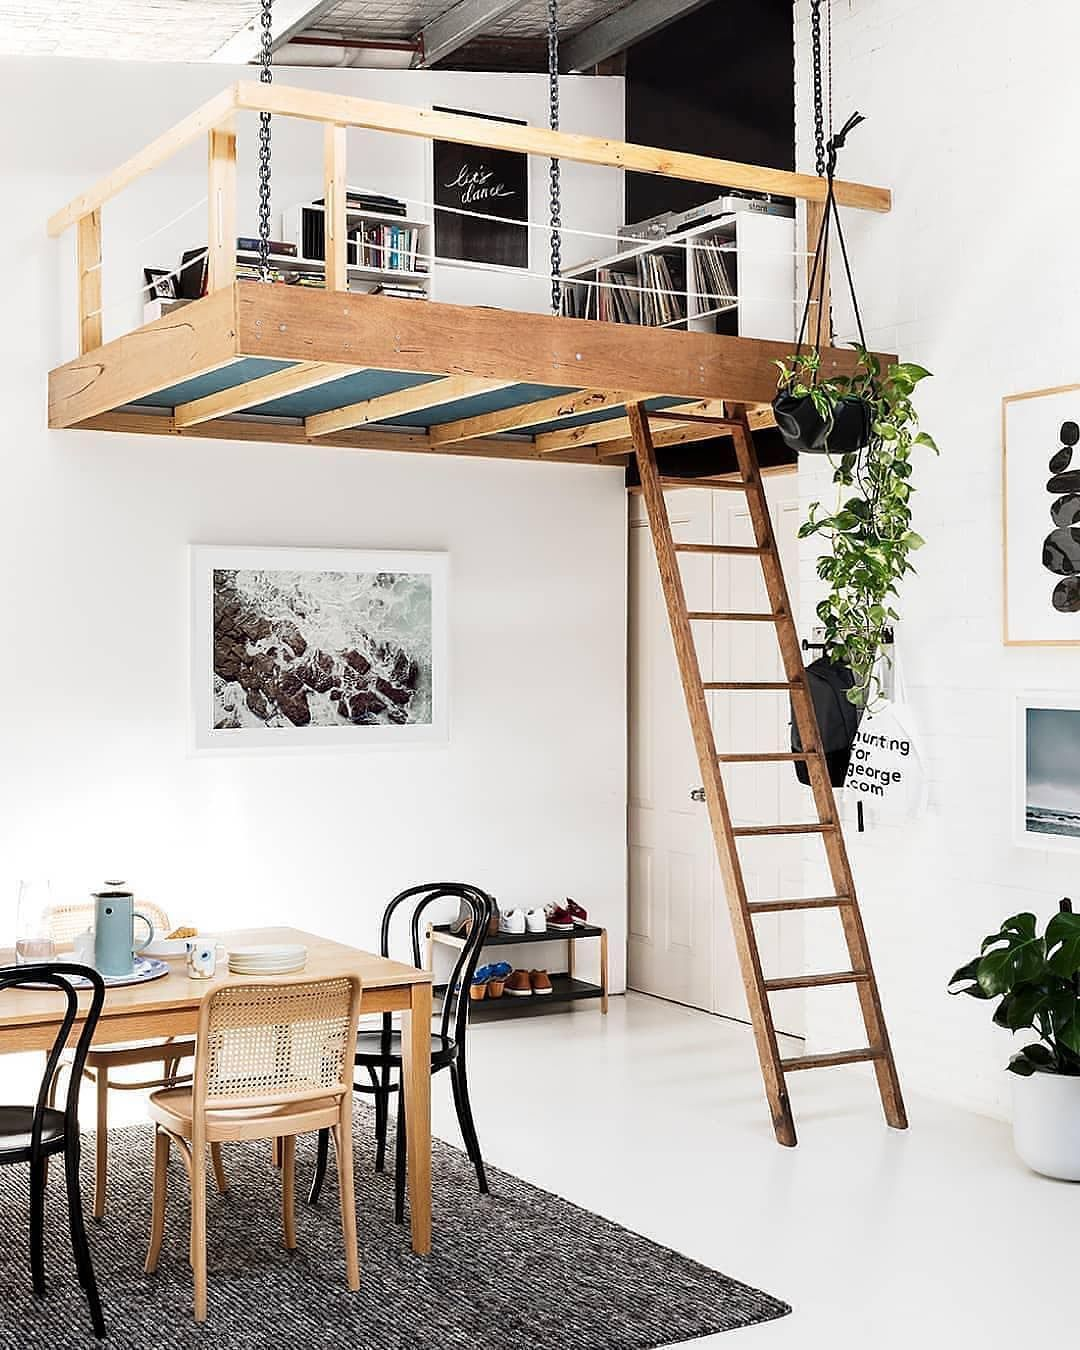 Malmö design supply on instagram mega loft goals 🙌🏻 who else is lusting over some double height ceilings just to build this beyond dreamy loft nook